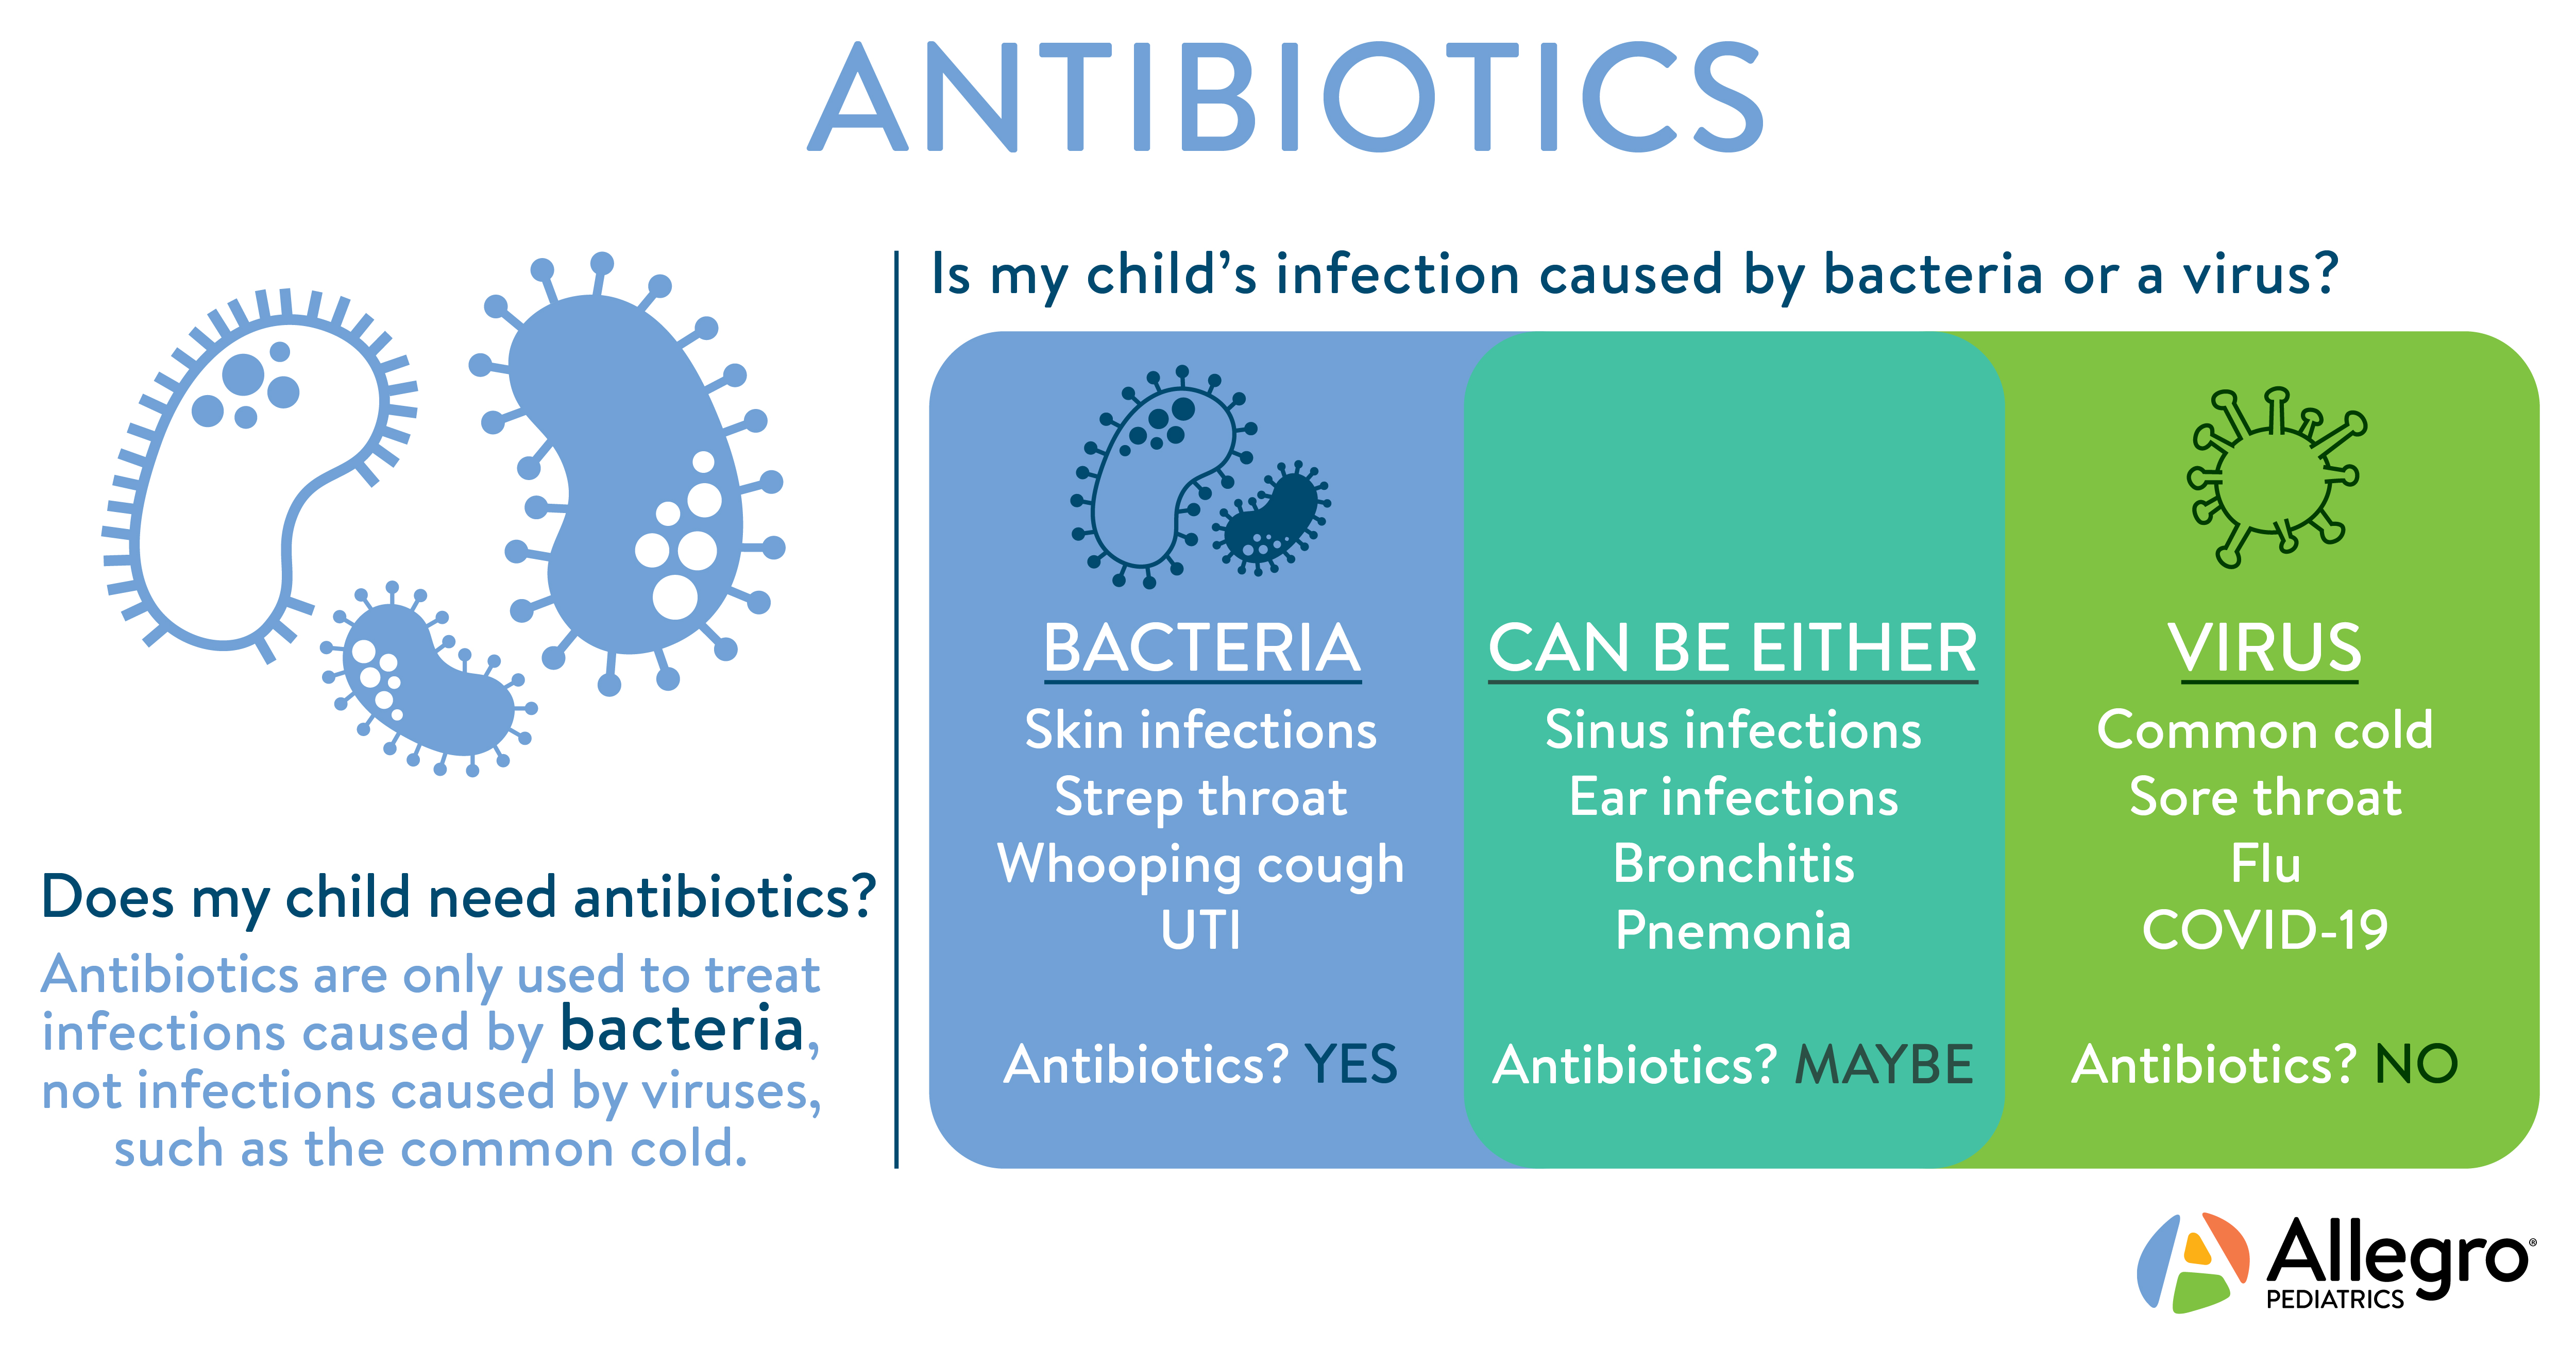 antibiotic-infographic.jpg